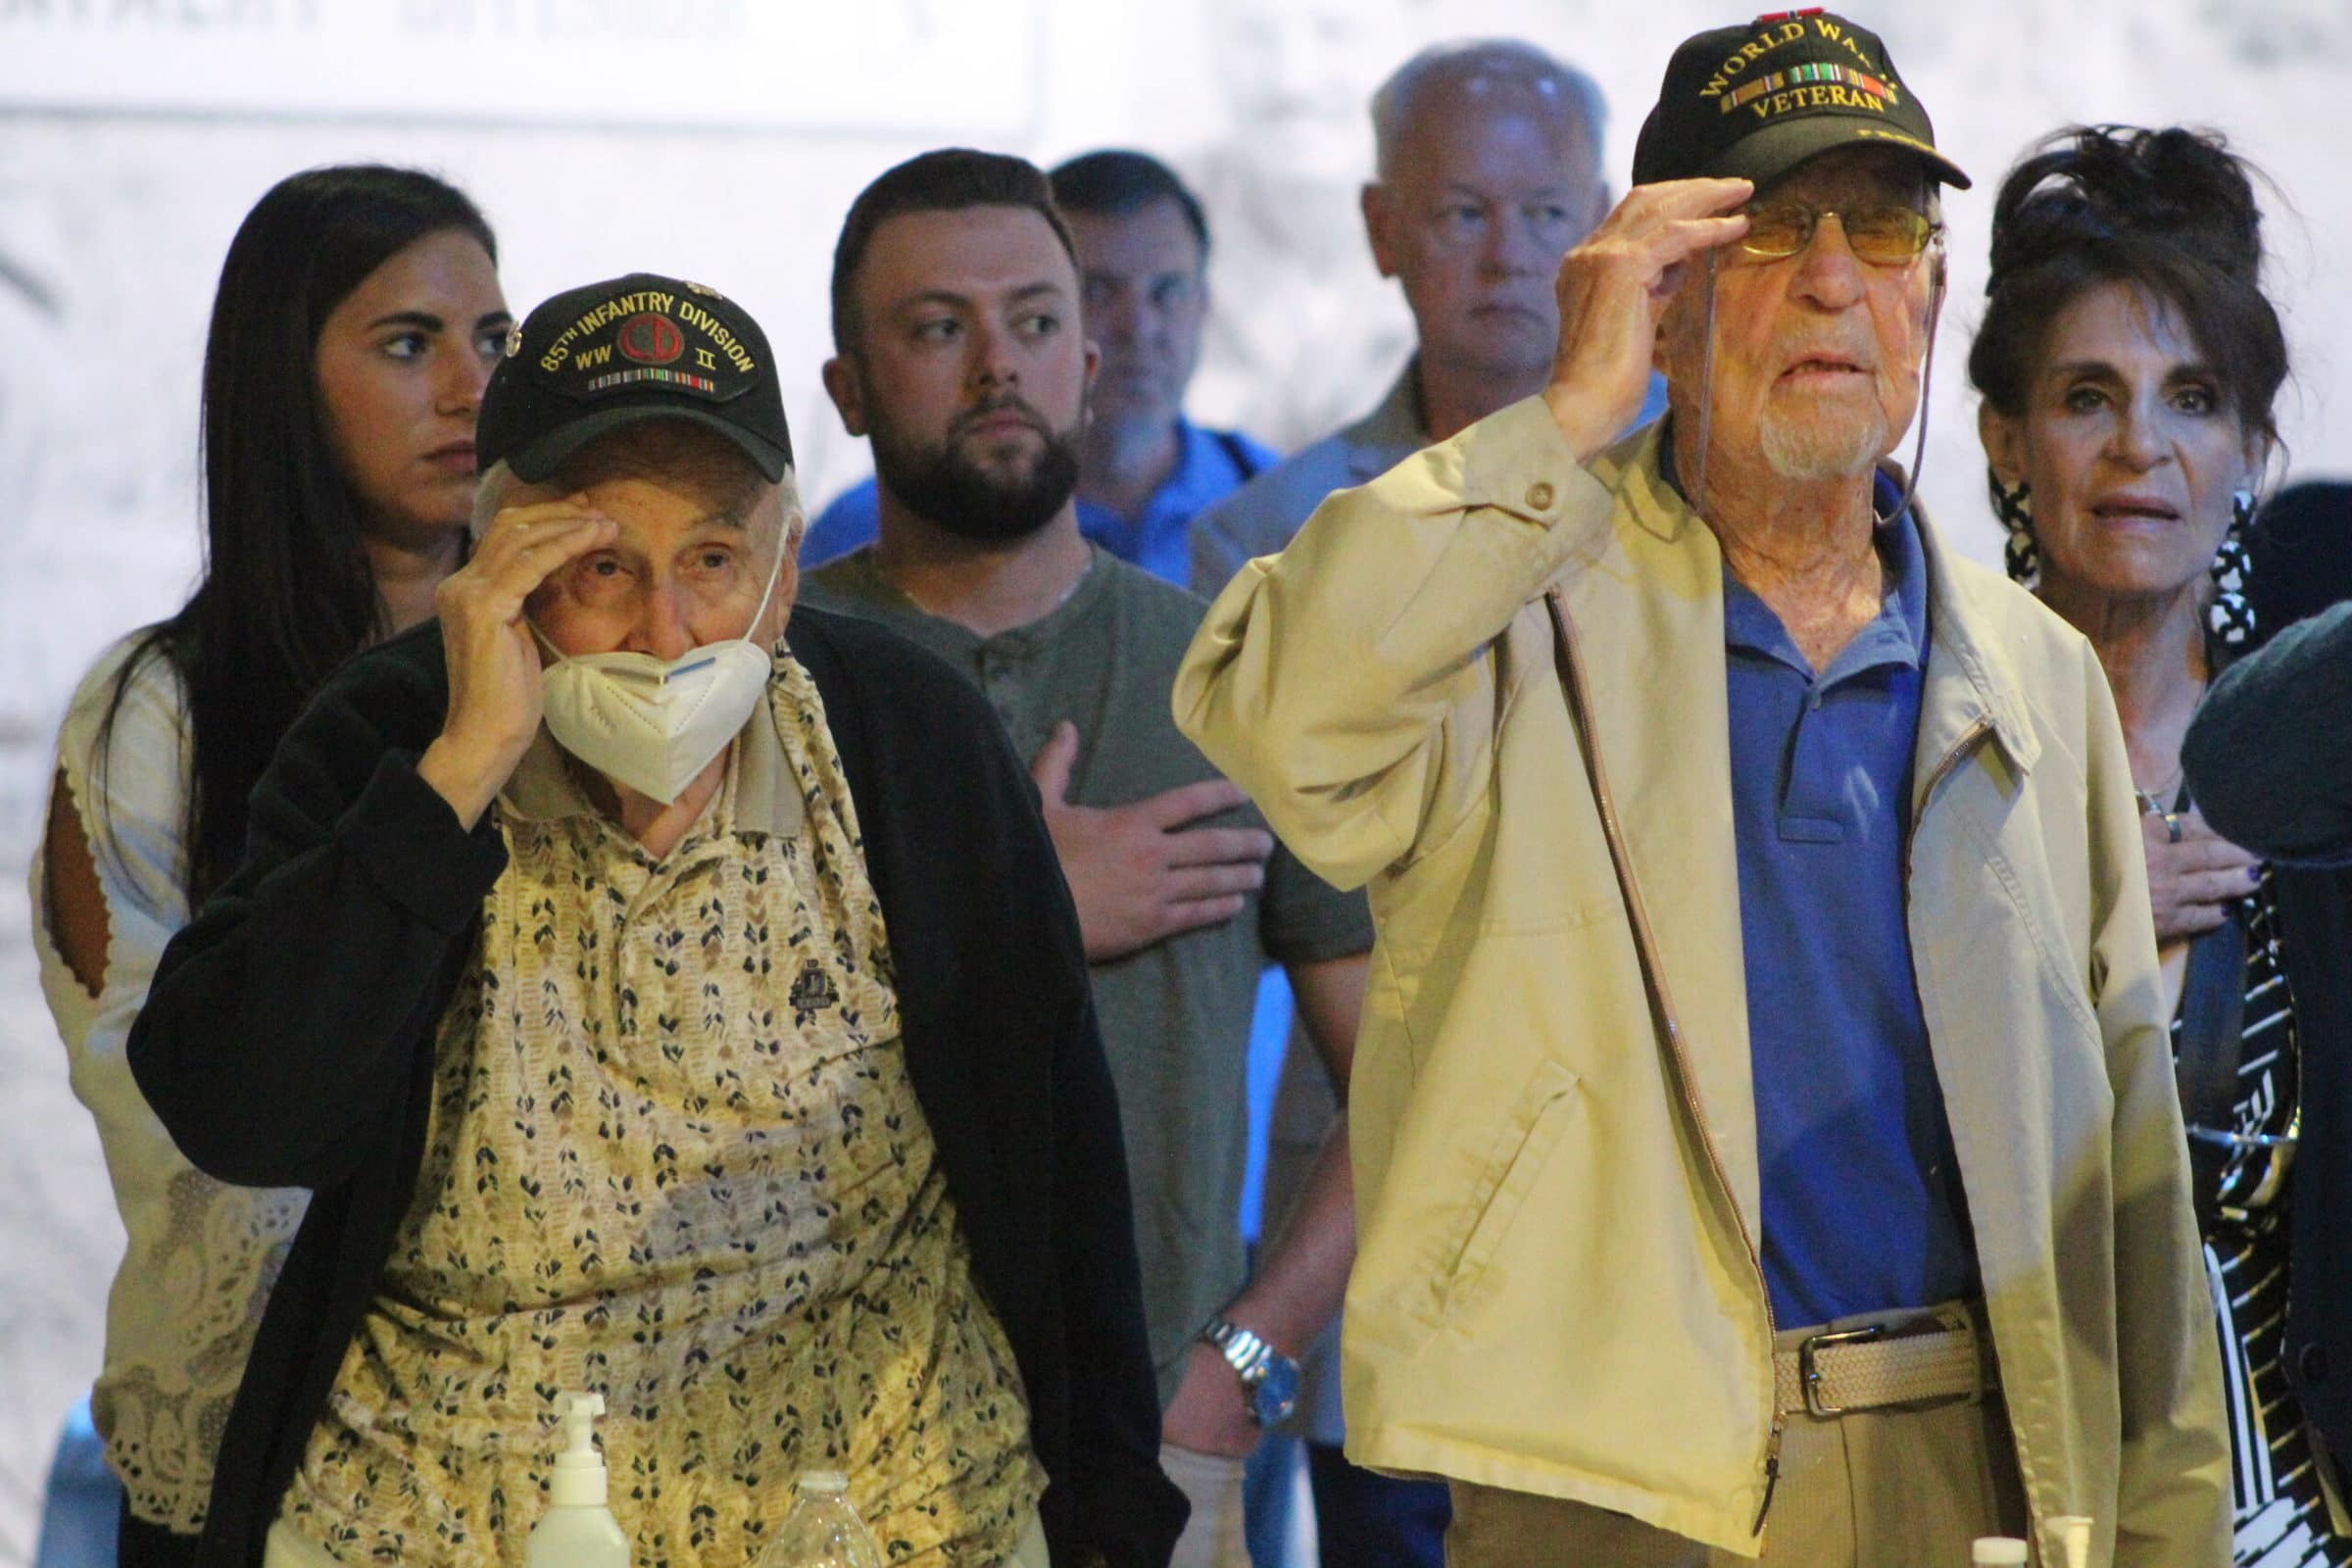 Veterans salute during the National Anthem.